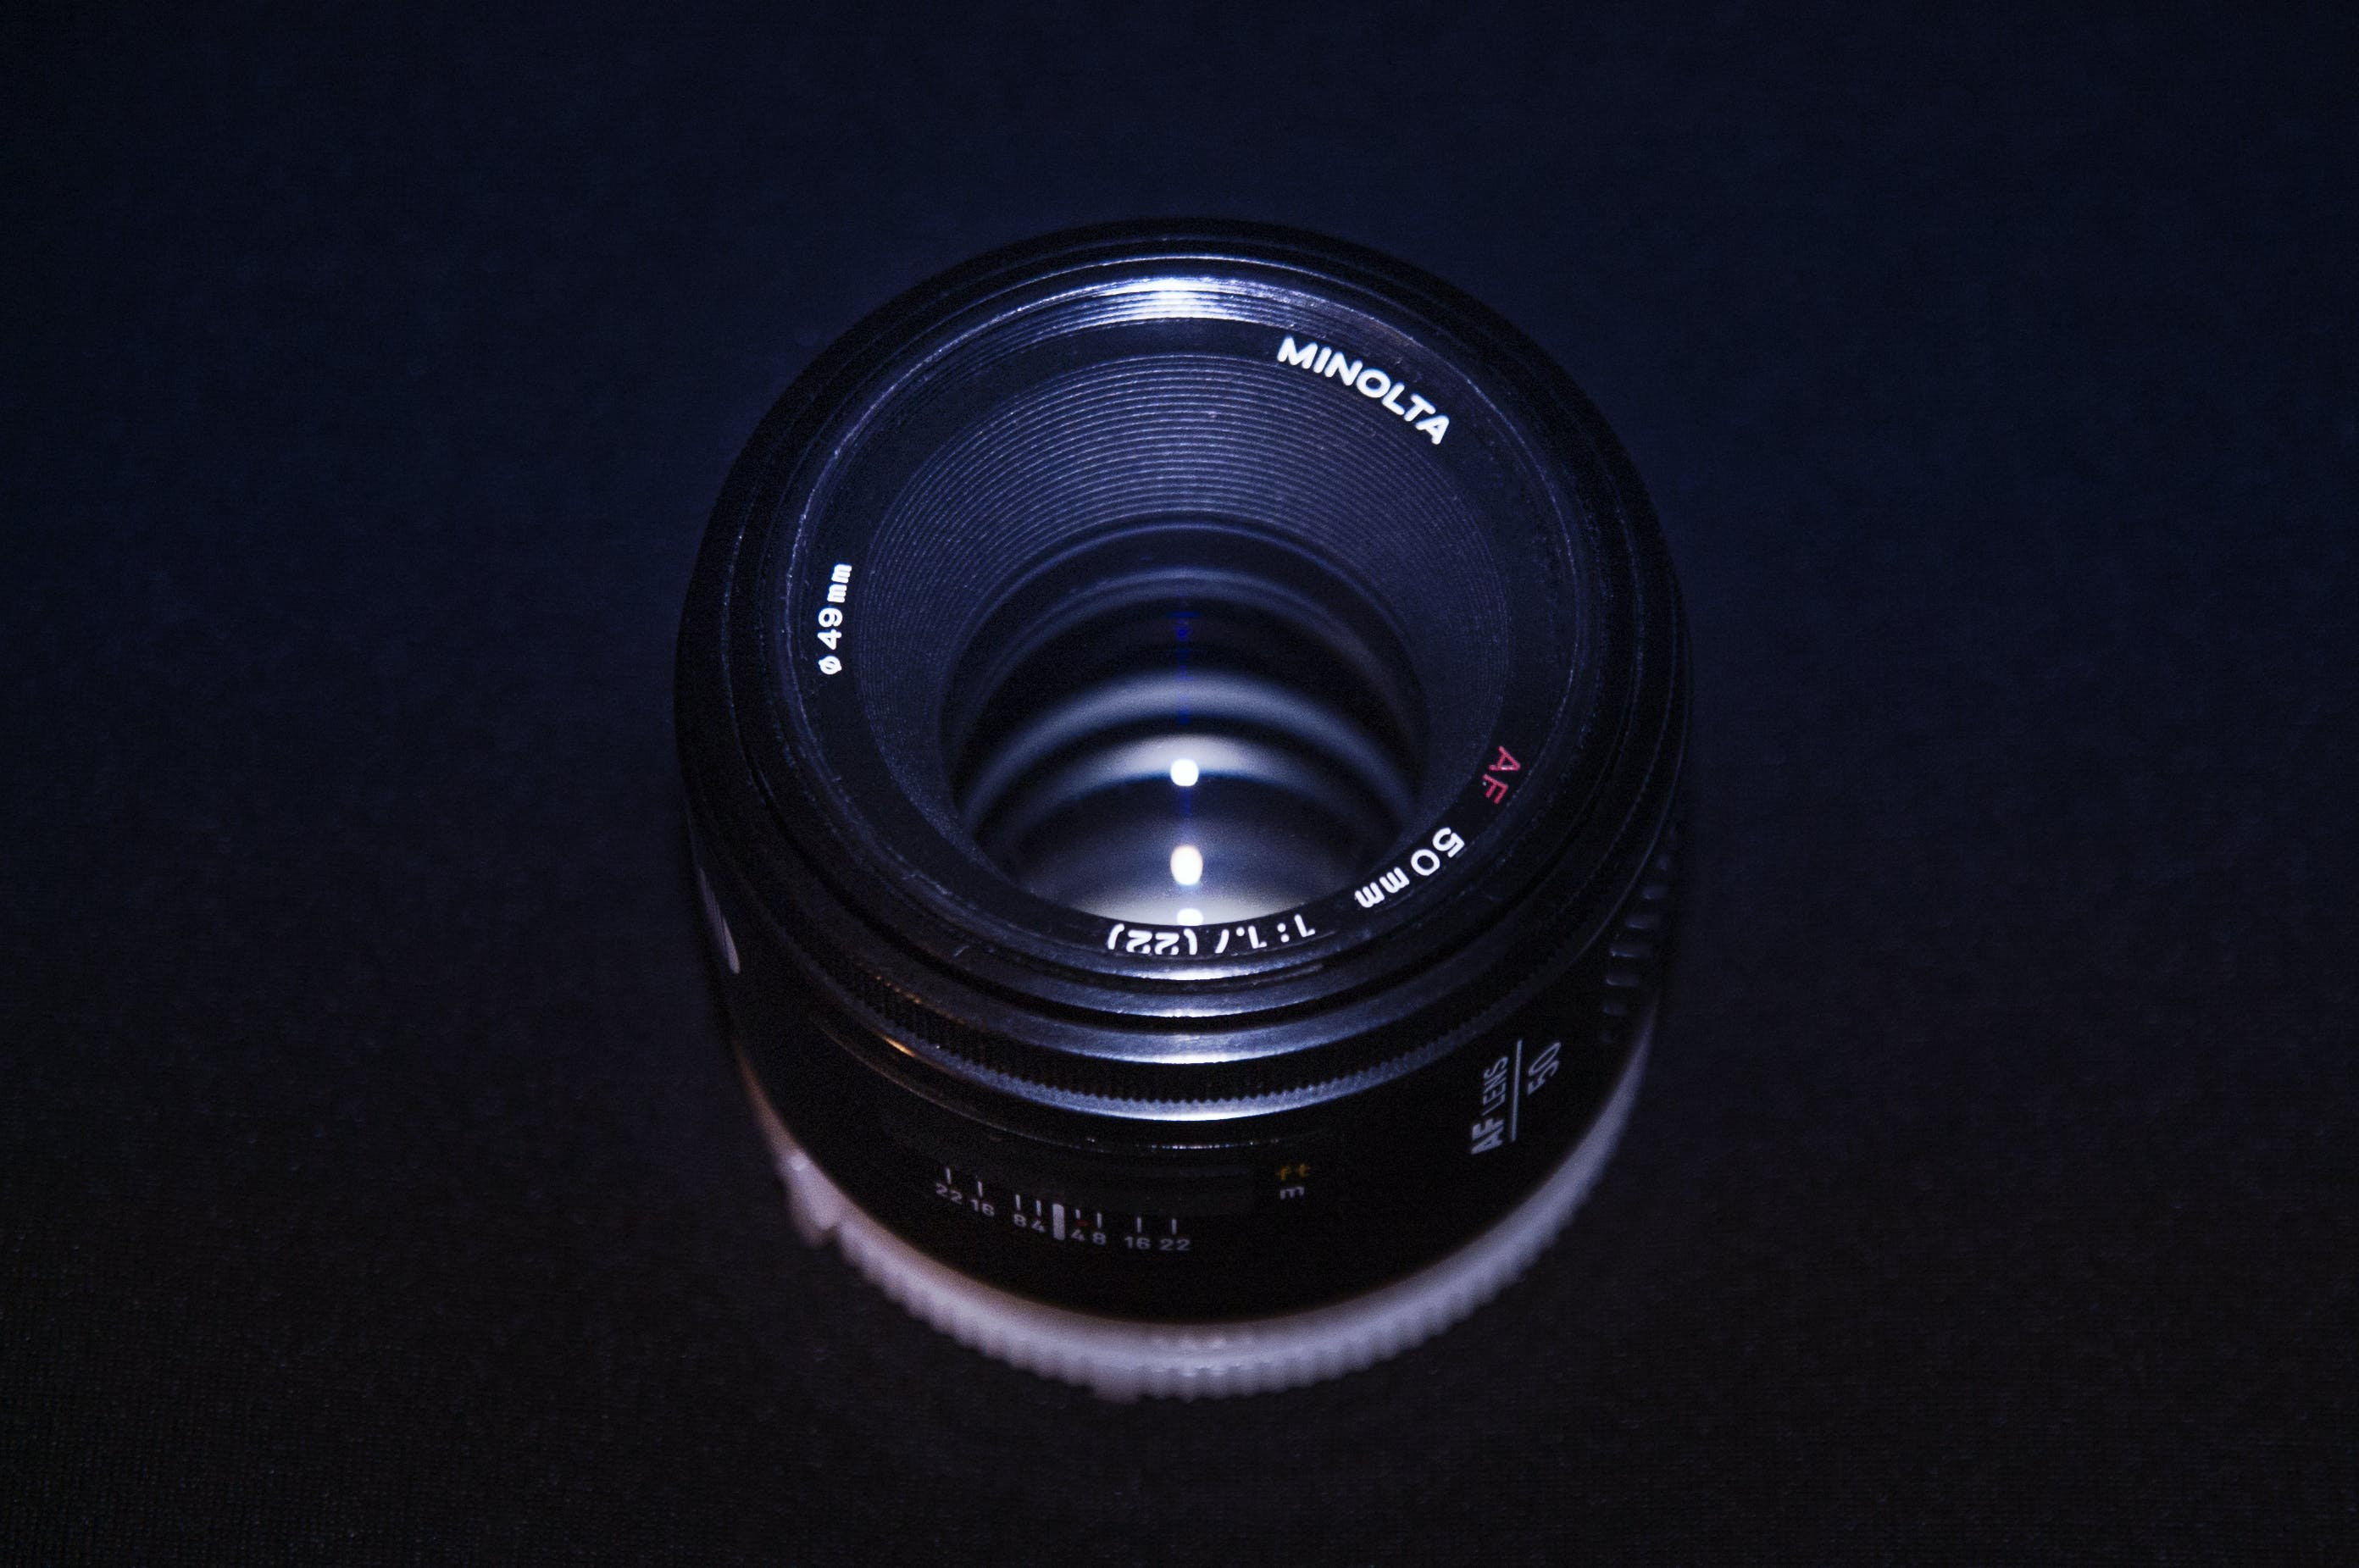 Free stock photo of camera, lens